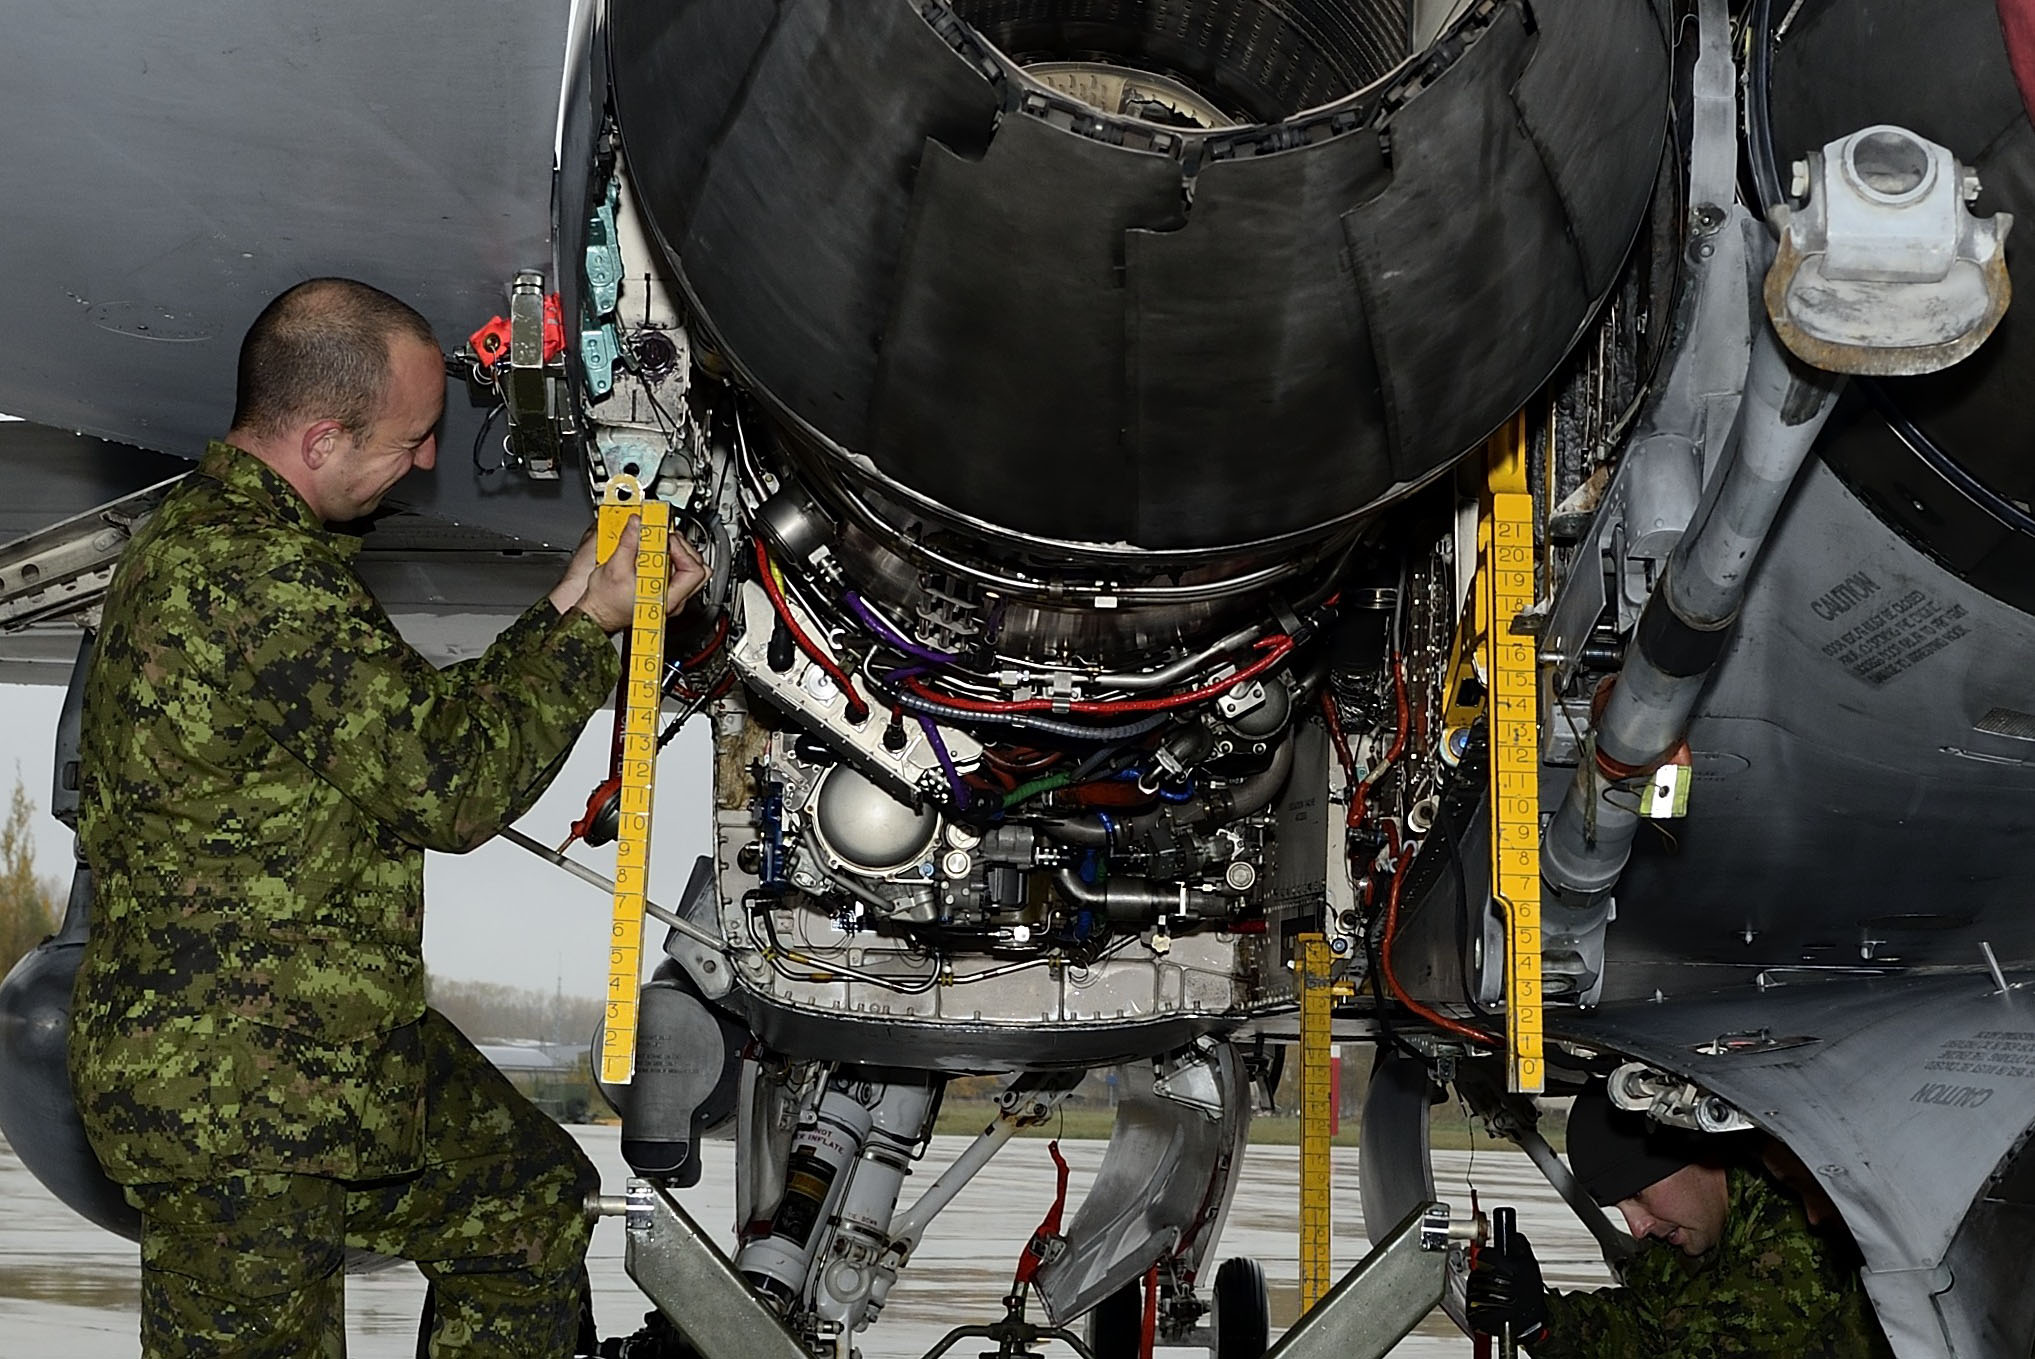 Šiauliai Air Base, Lithuania. 15 October 2014 – A member of the Canadian Air Task Force installs the engine guide rails in preparation to remove a CF-188 Hornet engine at Šiauliai Air Base, Lithuania during Operation REASSURANCE, in support of NATO Baltic Air Policing Block 36. (Photo: Cpl Gabrielle DesRochers)